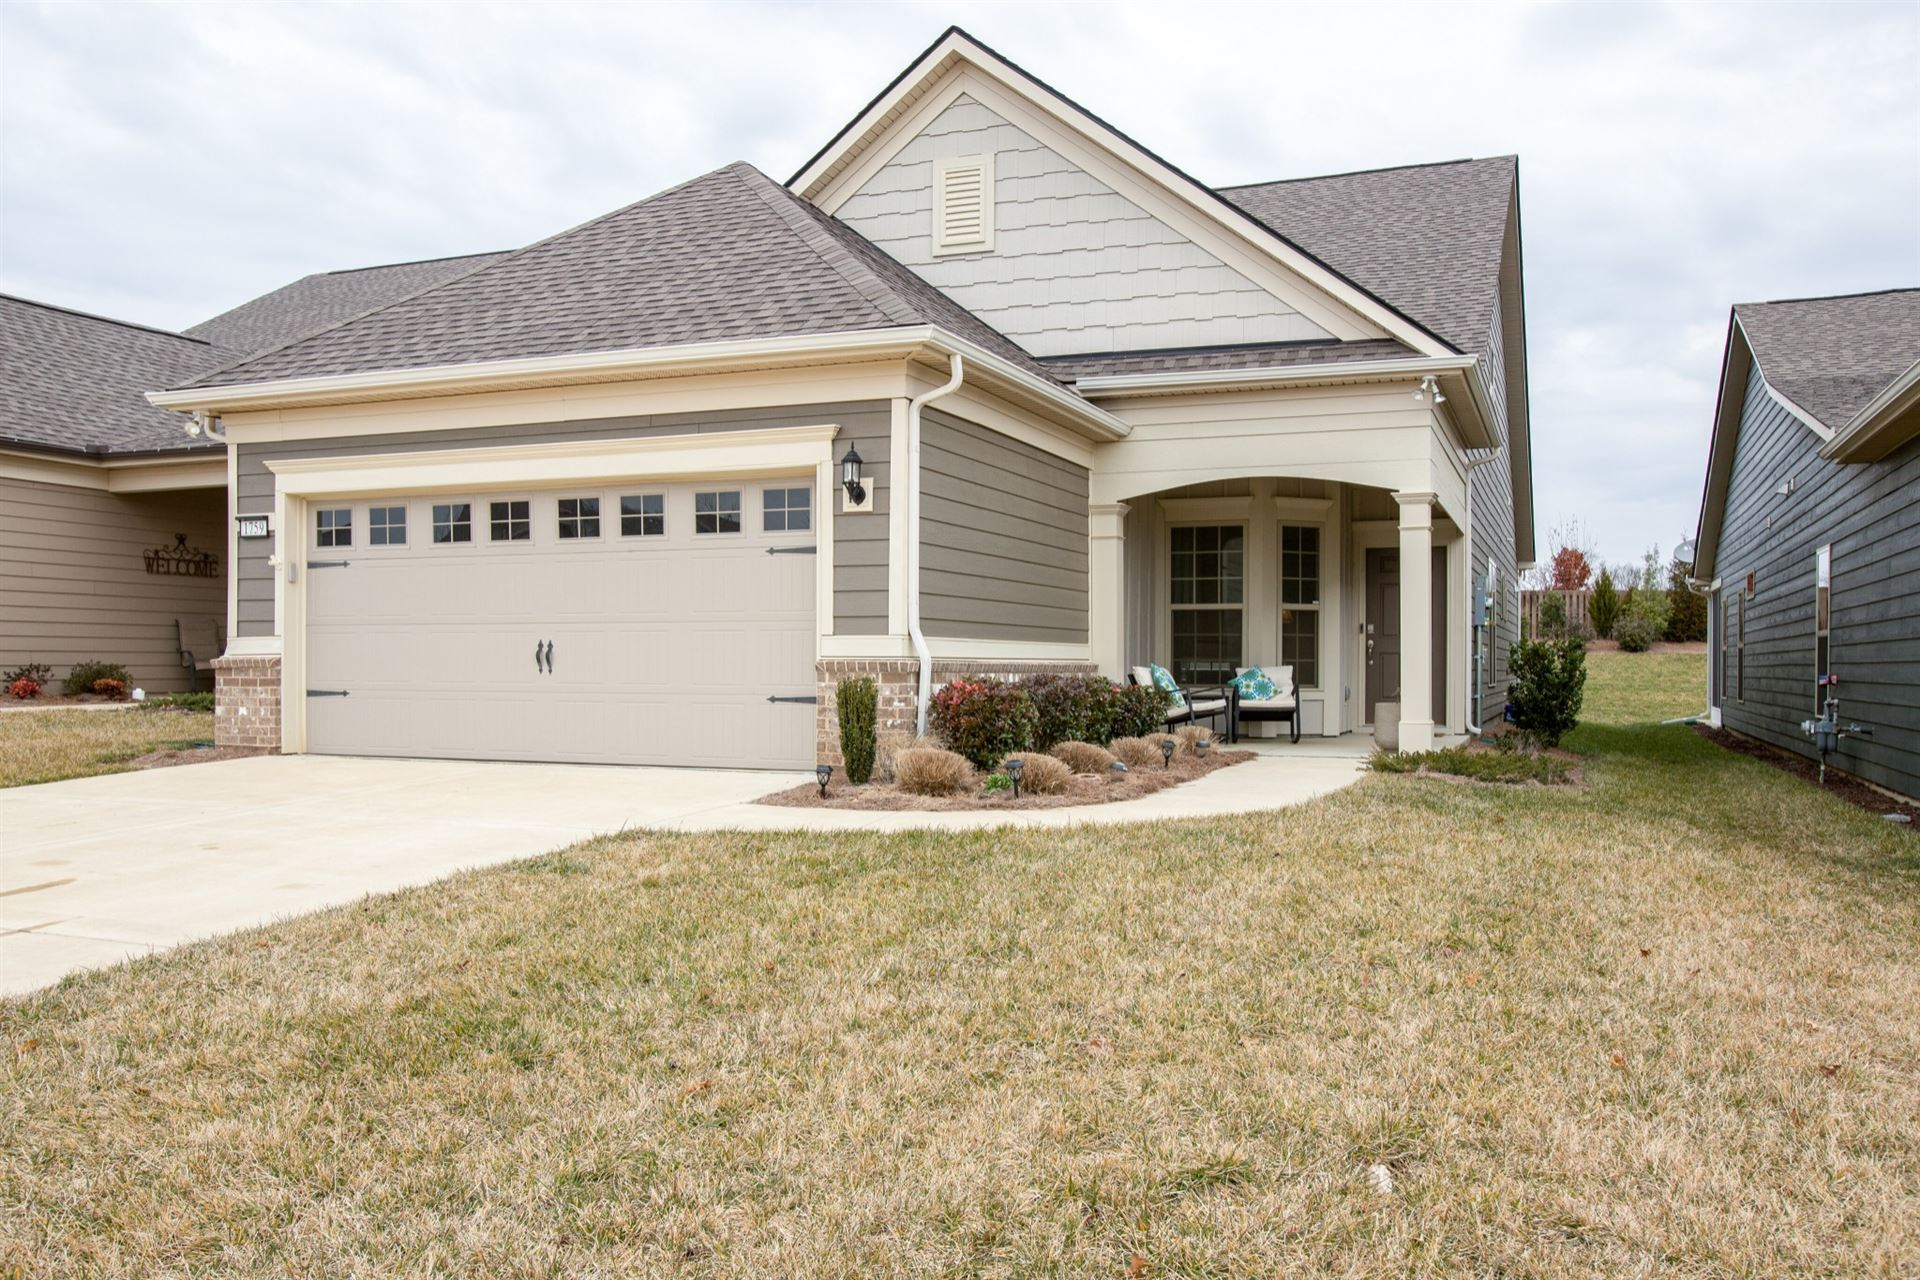 Photo of 1759 Humphreys Glen, Spring Hill, TN 37174 (MLS # 2229208)